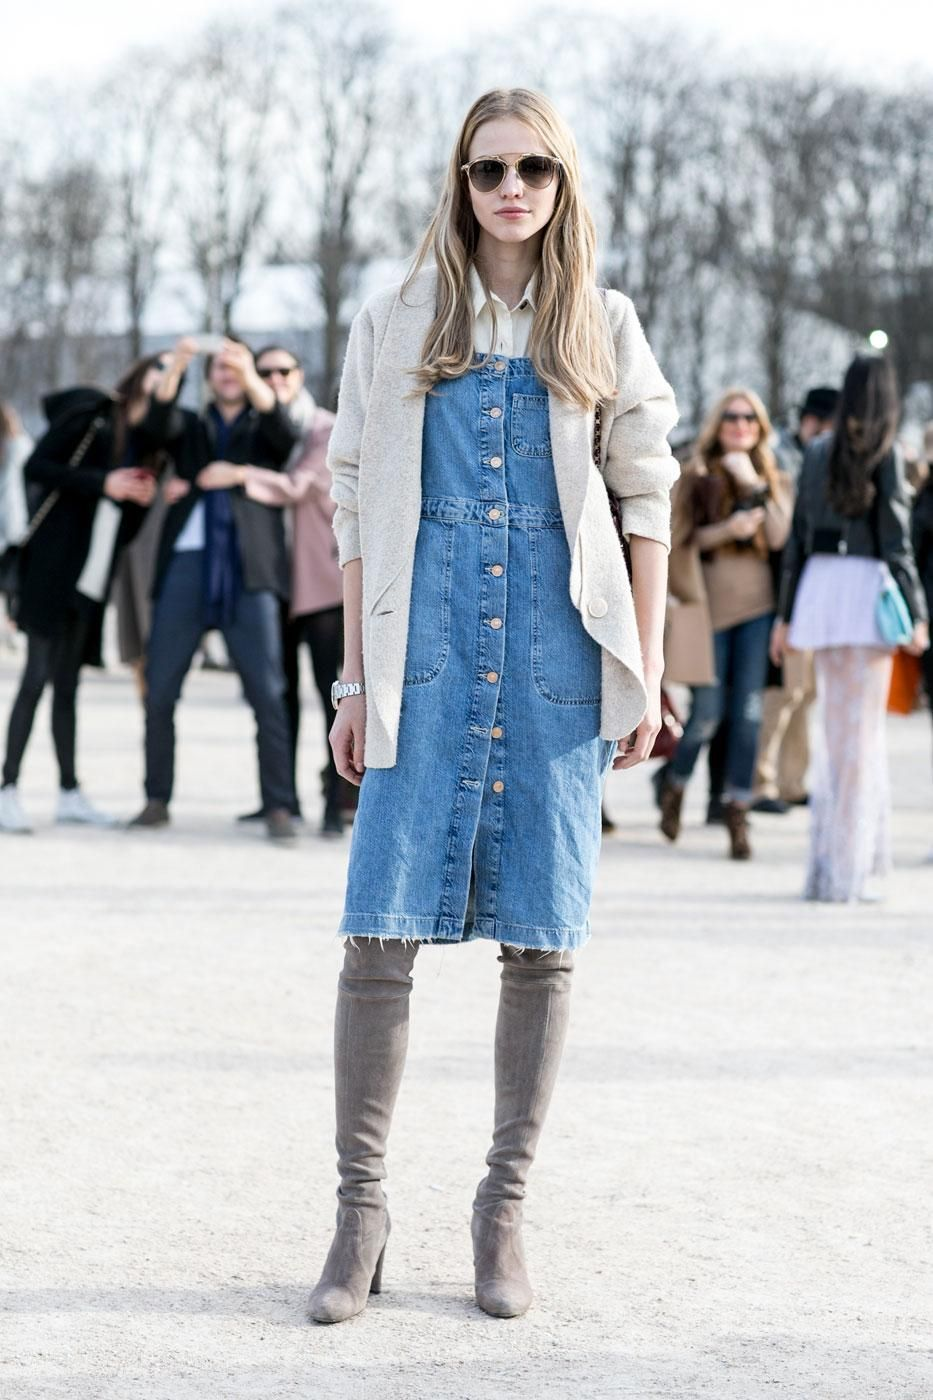 f03a69cf9b1 All The Best Street Style Snaps From Paris Fashion Week Fall 2015 -  70s  inspired blue denim midi dress with a frayed hem and center snaps + gray  suede over ...